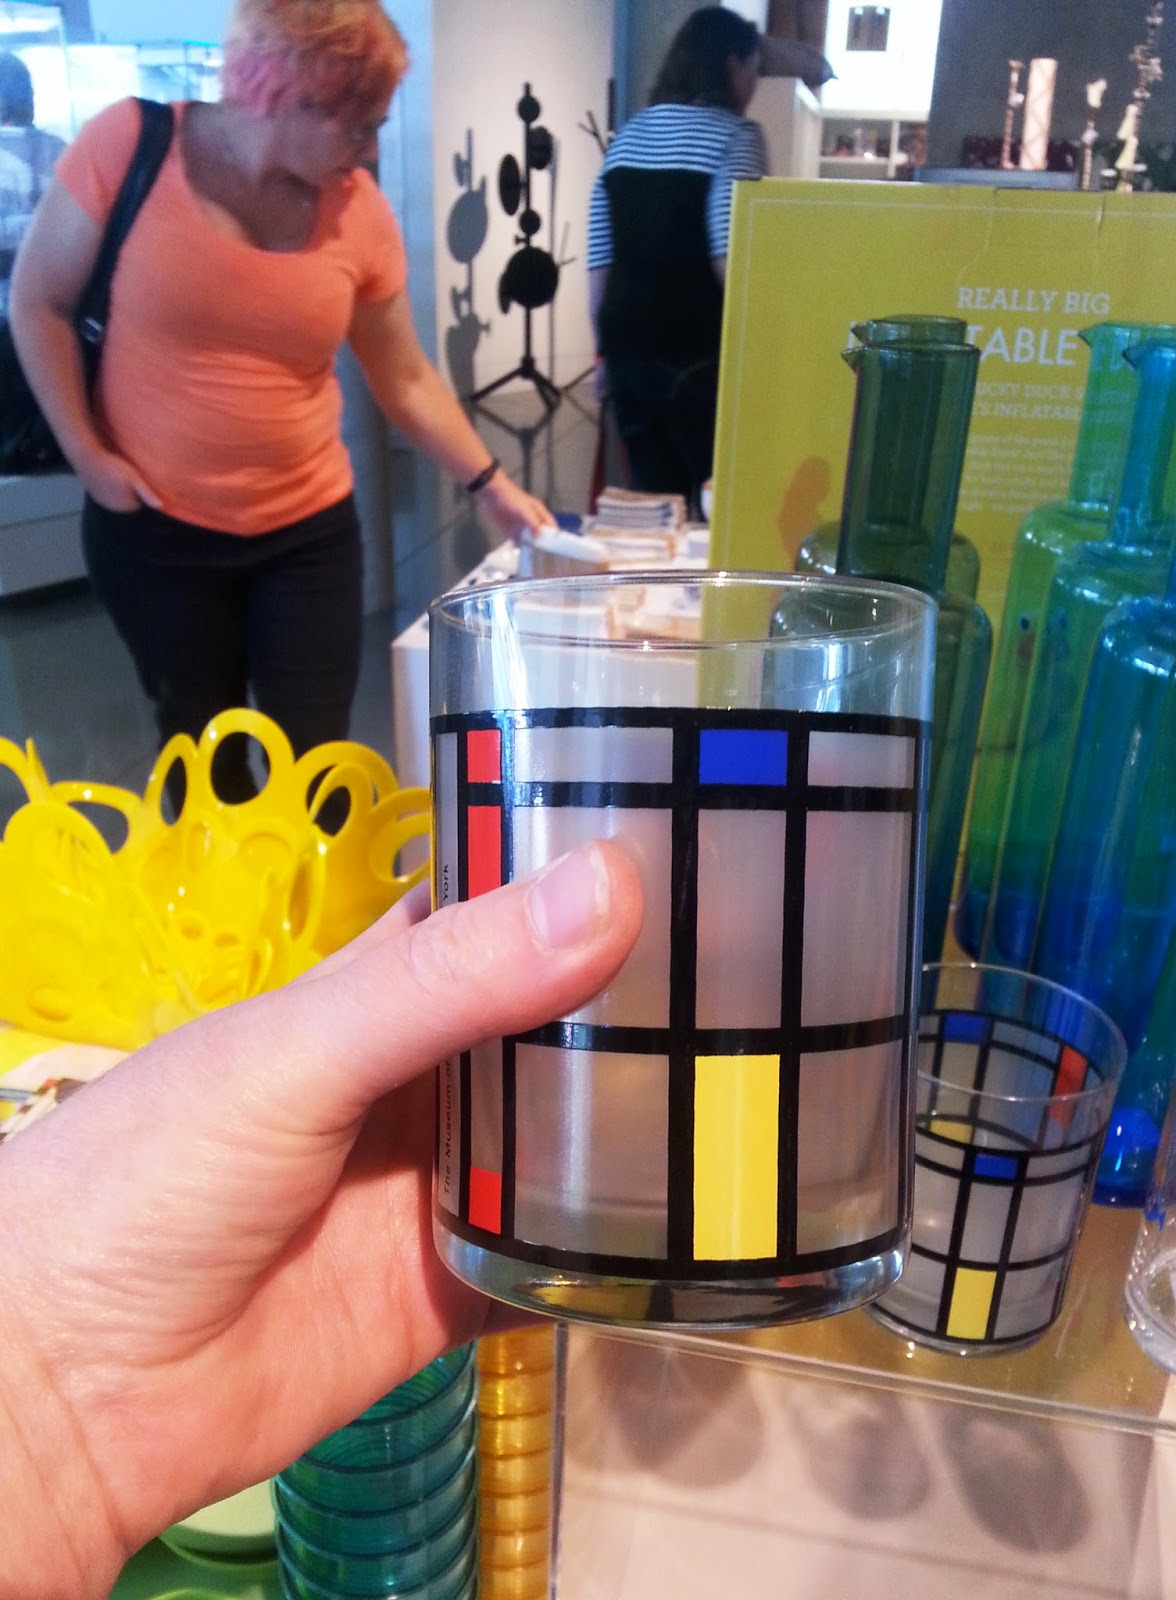 A hand holding a Piet Mondrian-styled glass in a gift shop.